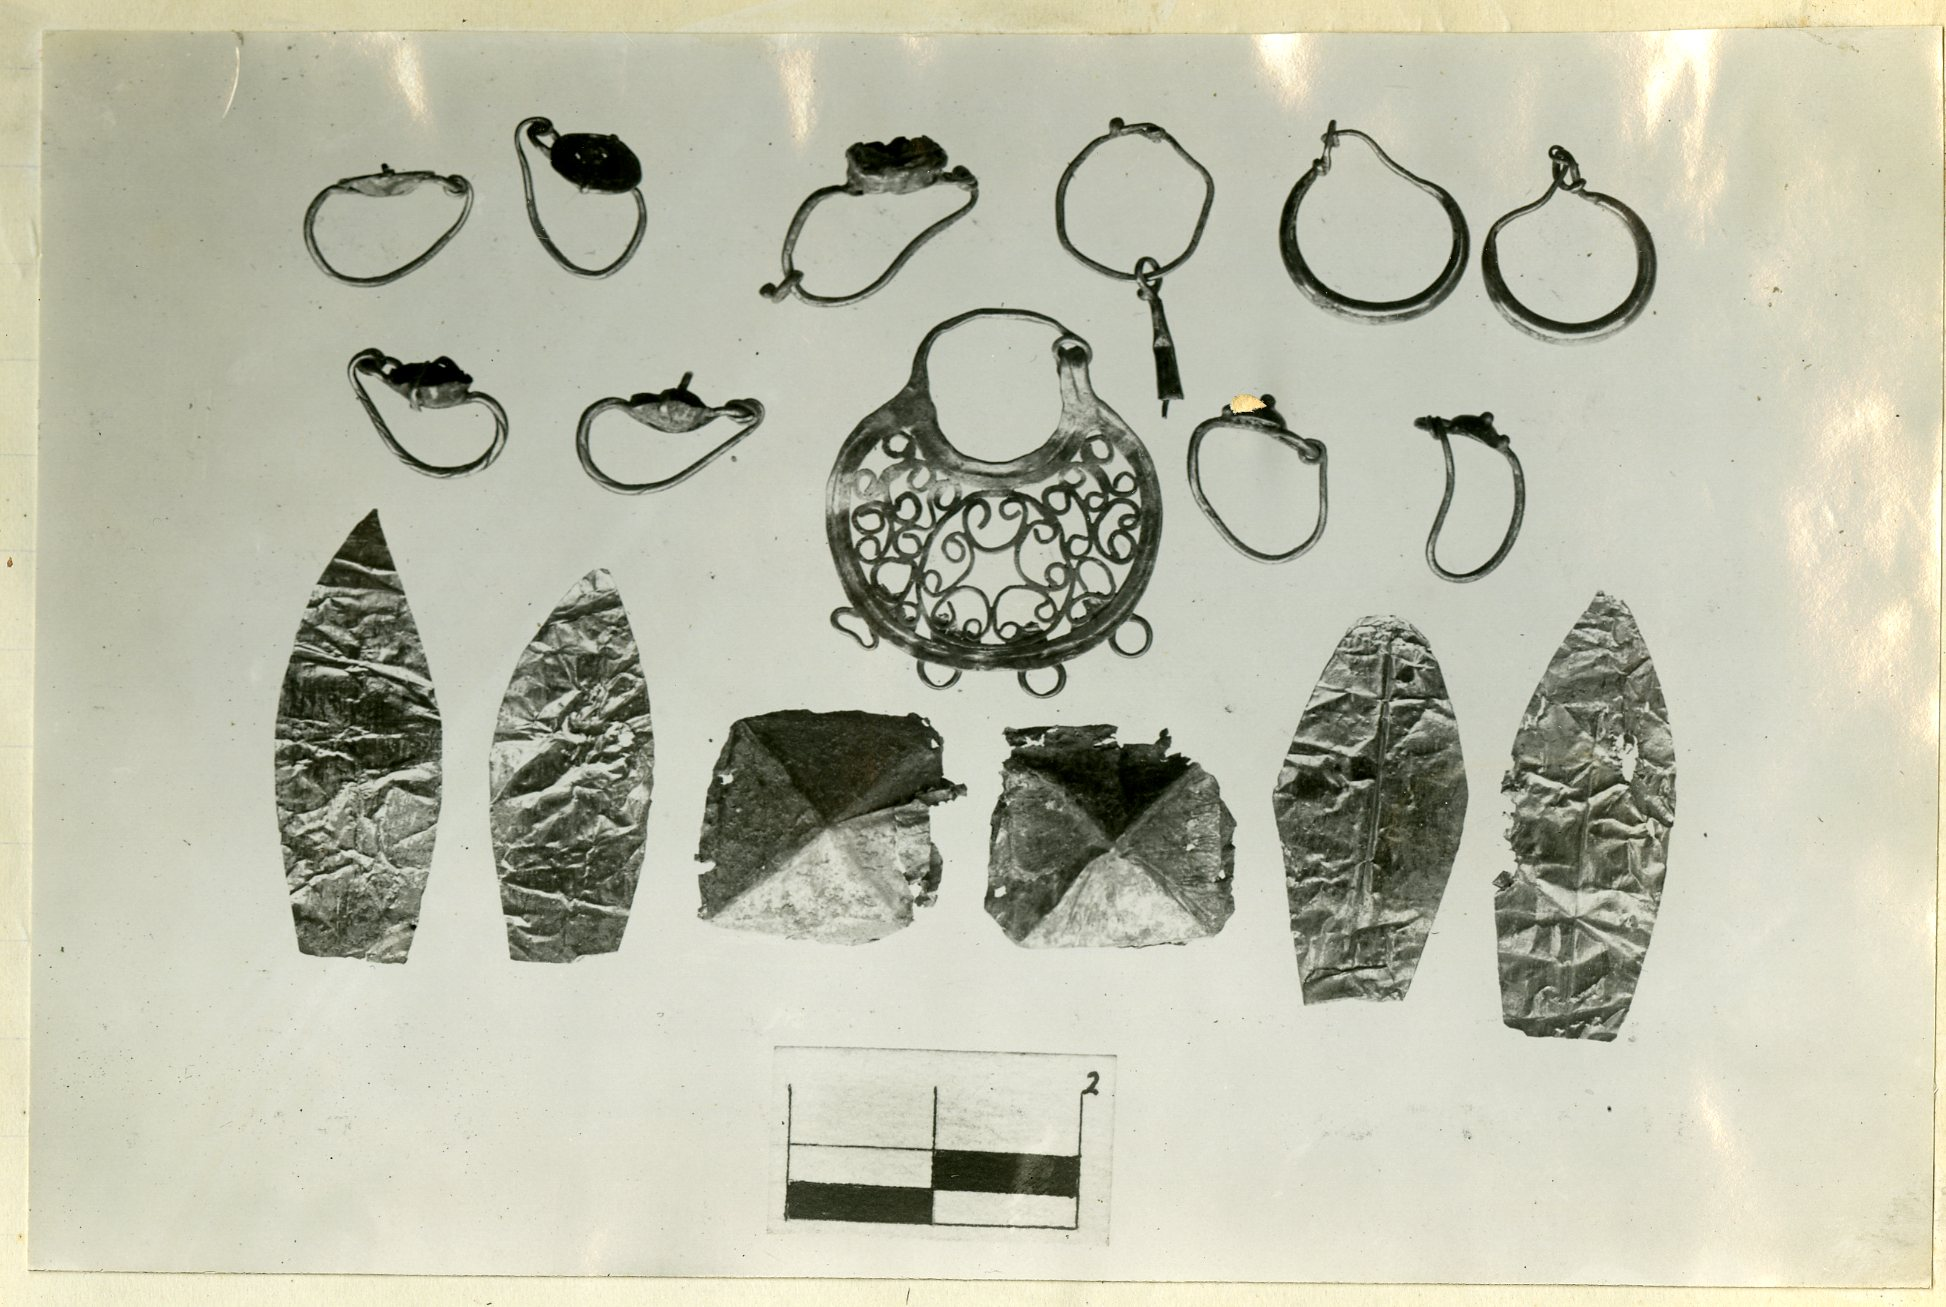 Gold earrings and foil from Tomb 295.